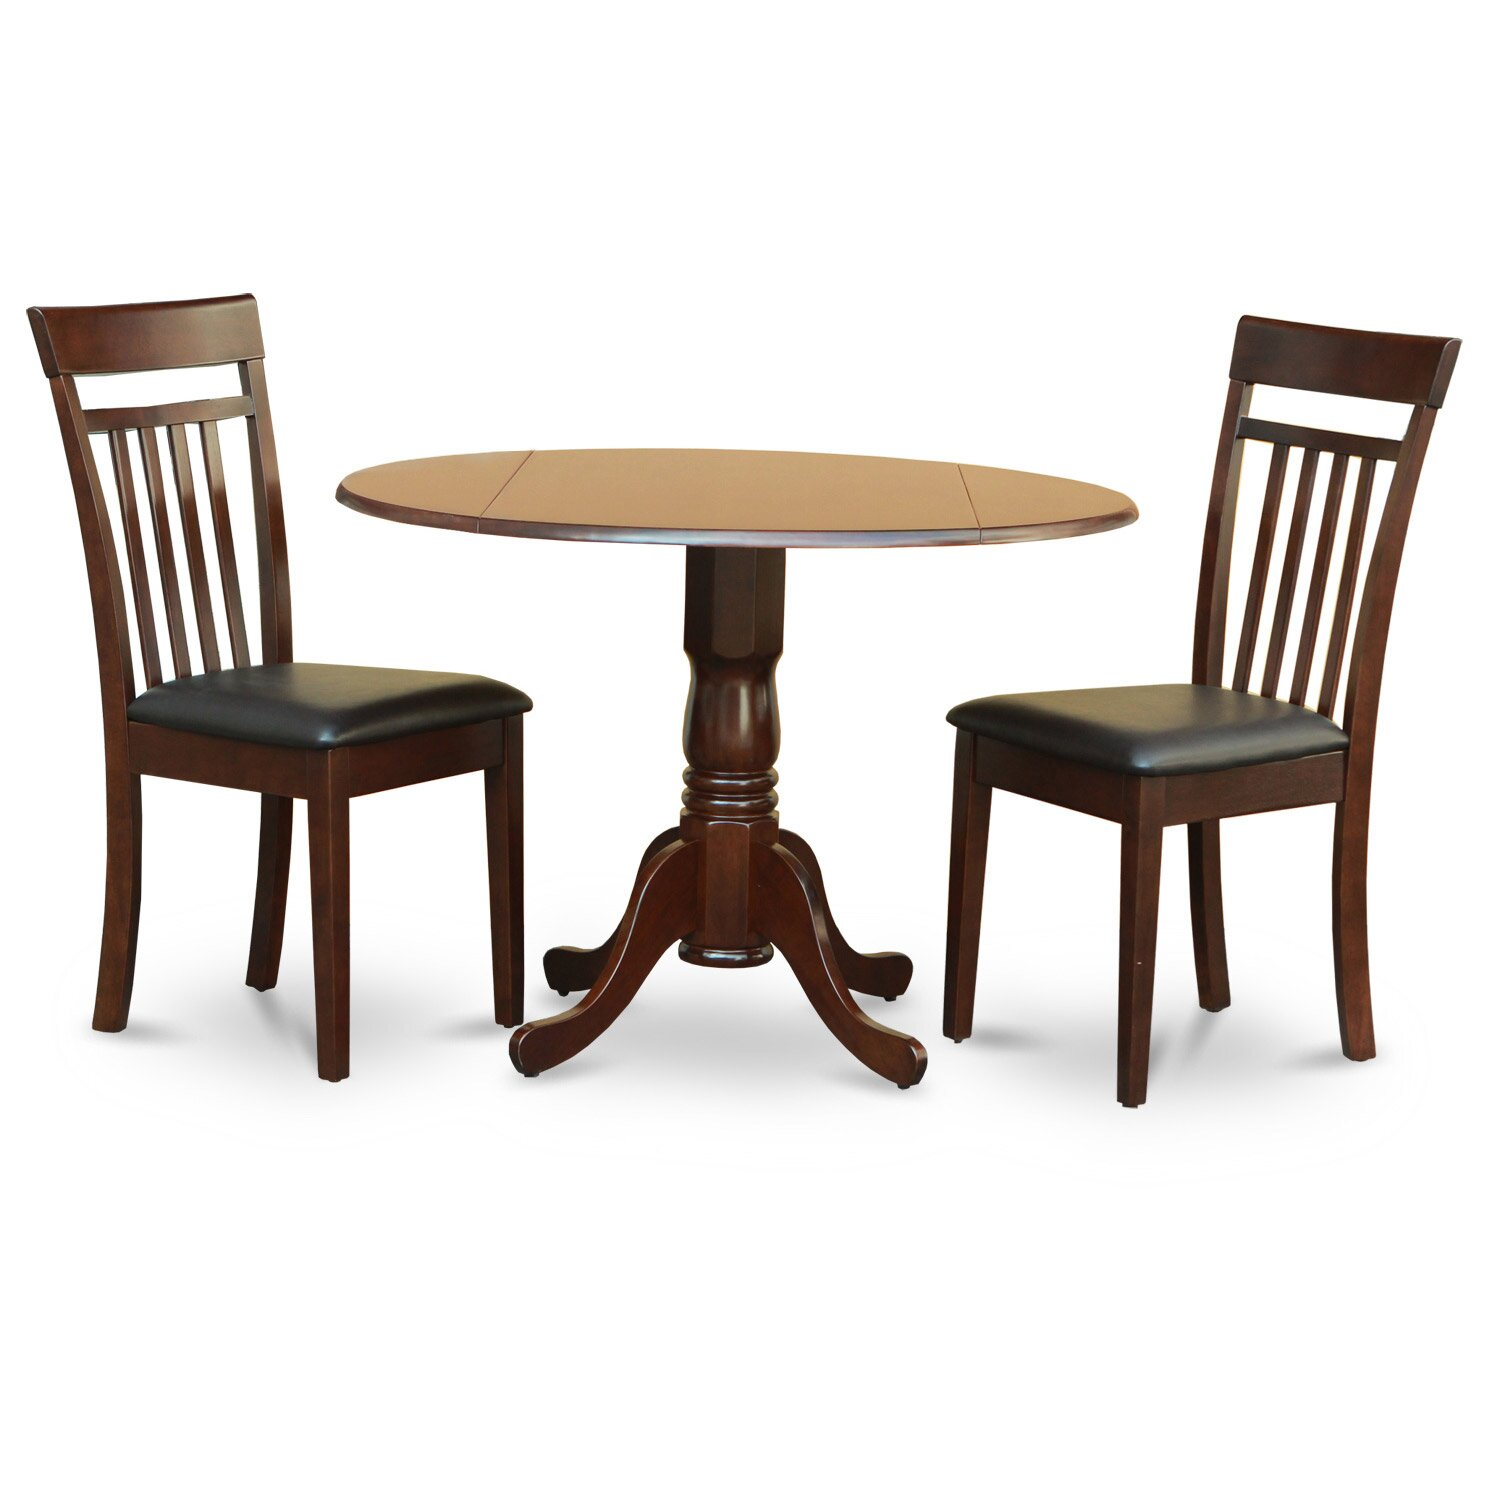 Dining Table For Sale Gloucester Charlton Home 3 Set Reviews